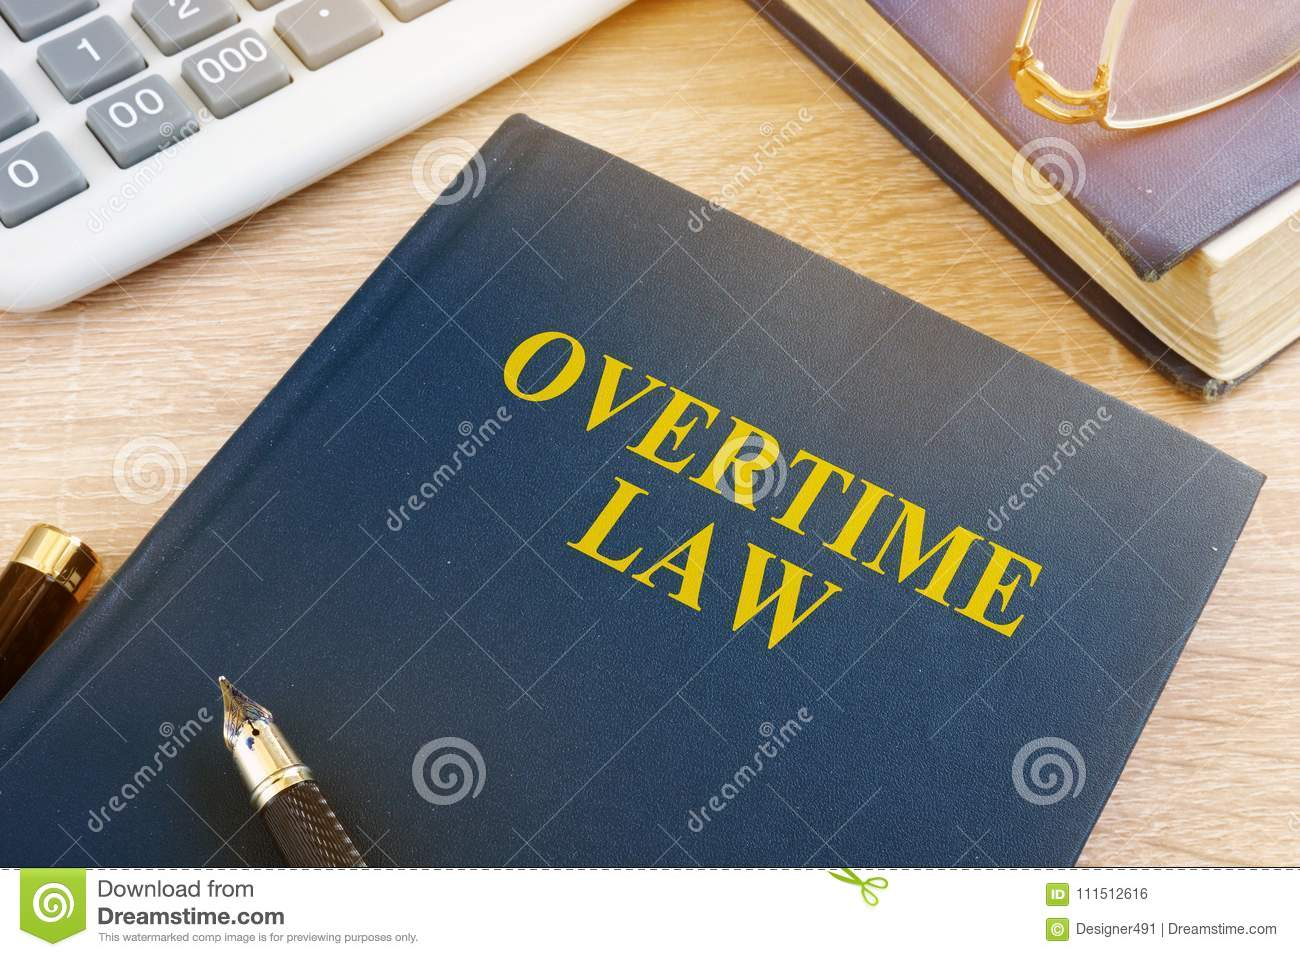 overtime law and calculator stock photo image of productivity